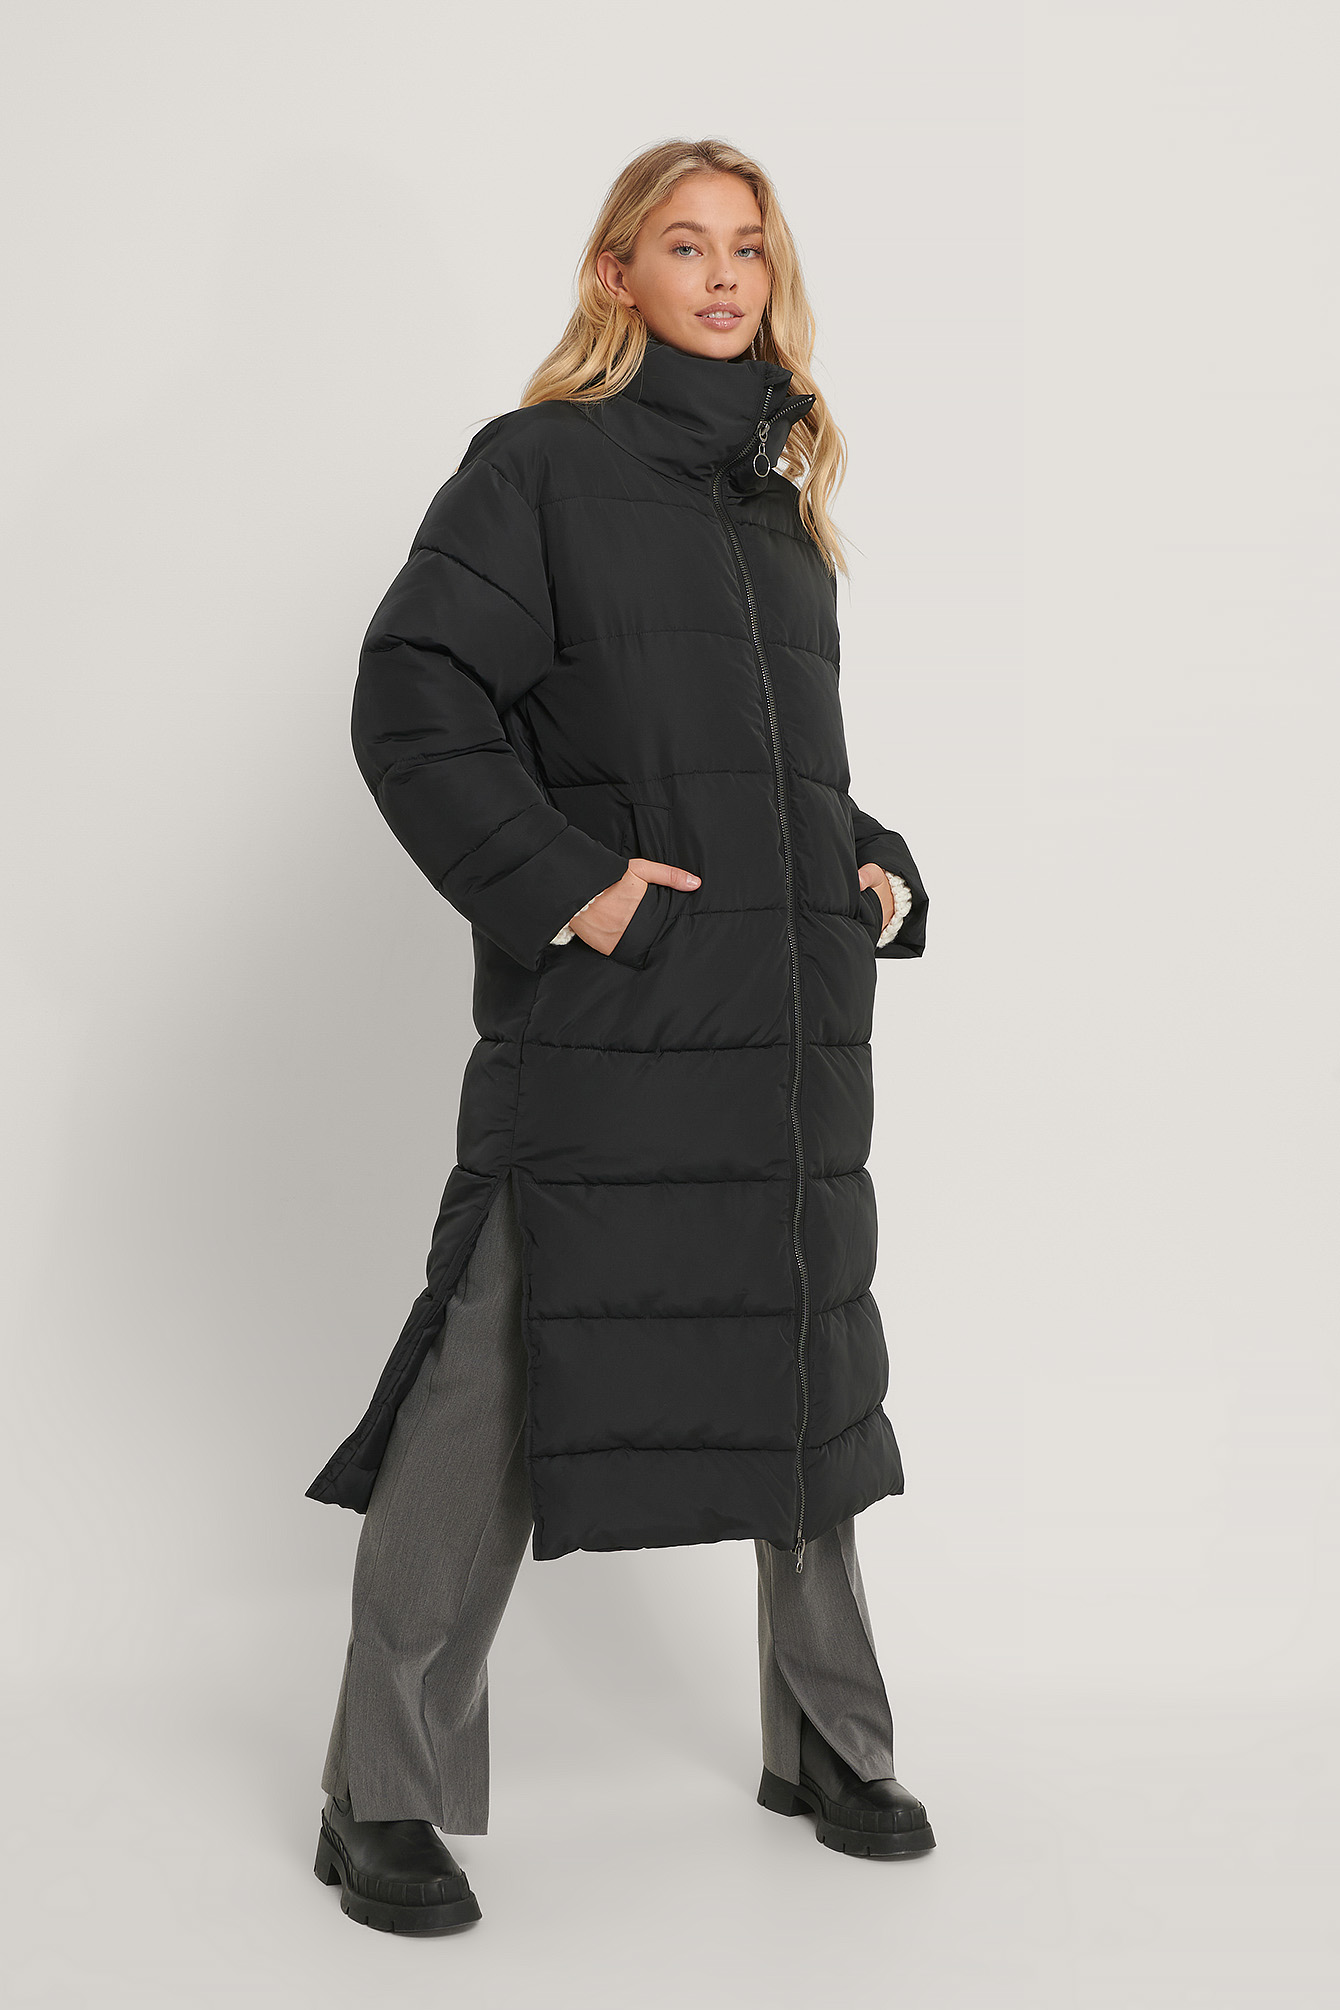 Black Oversized Long Puffer Jacket